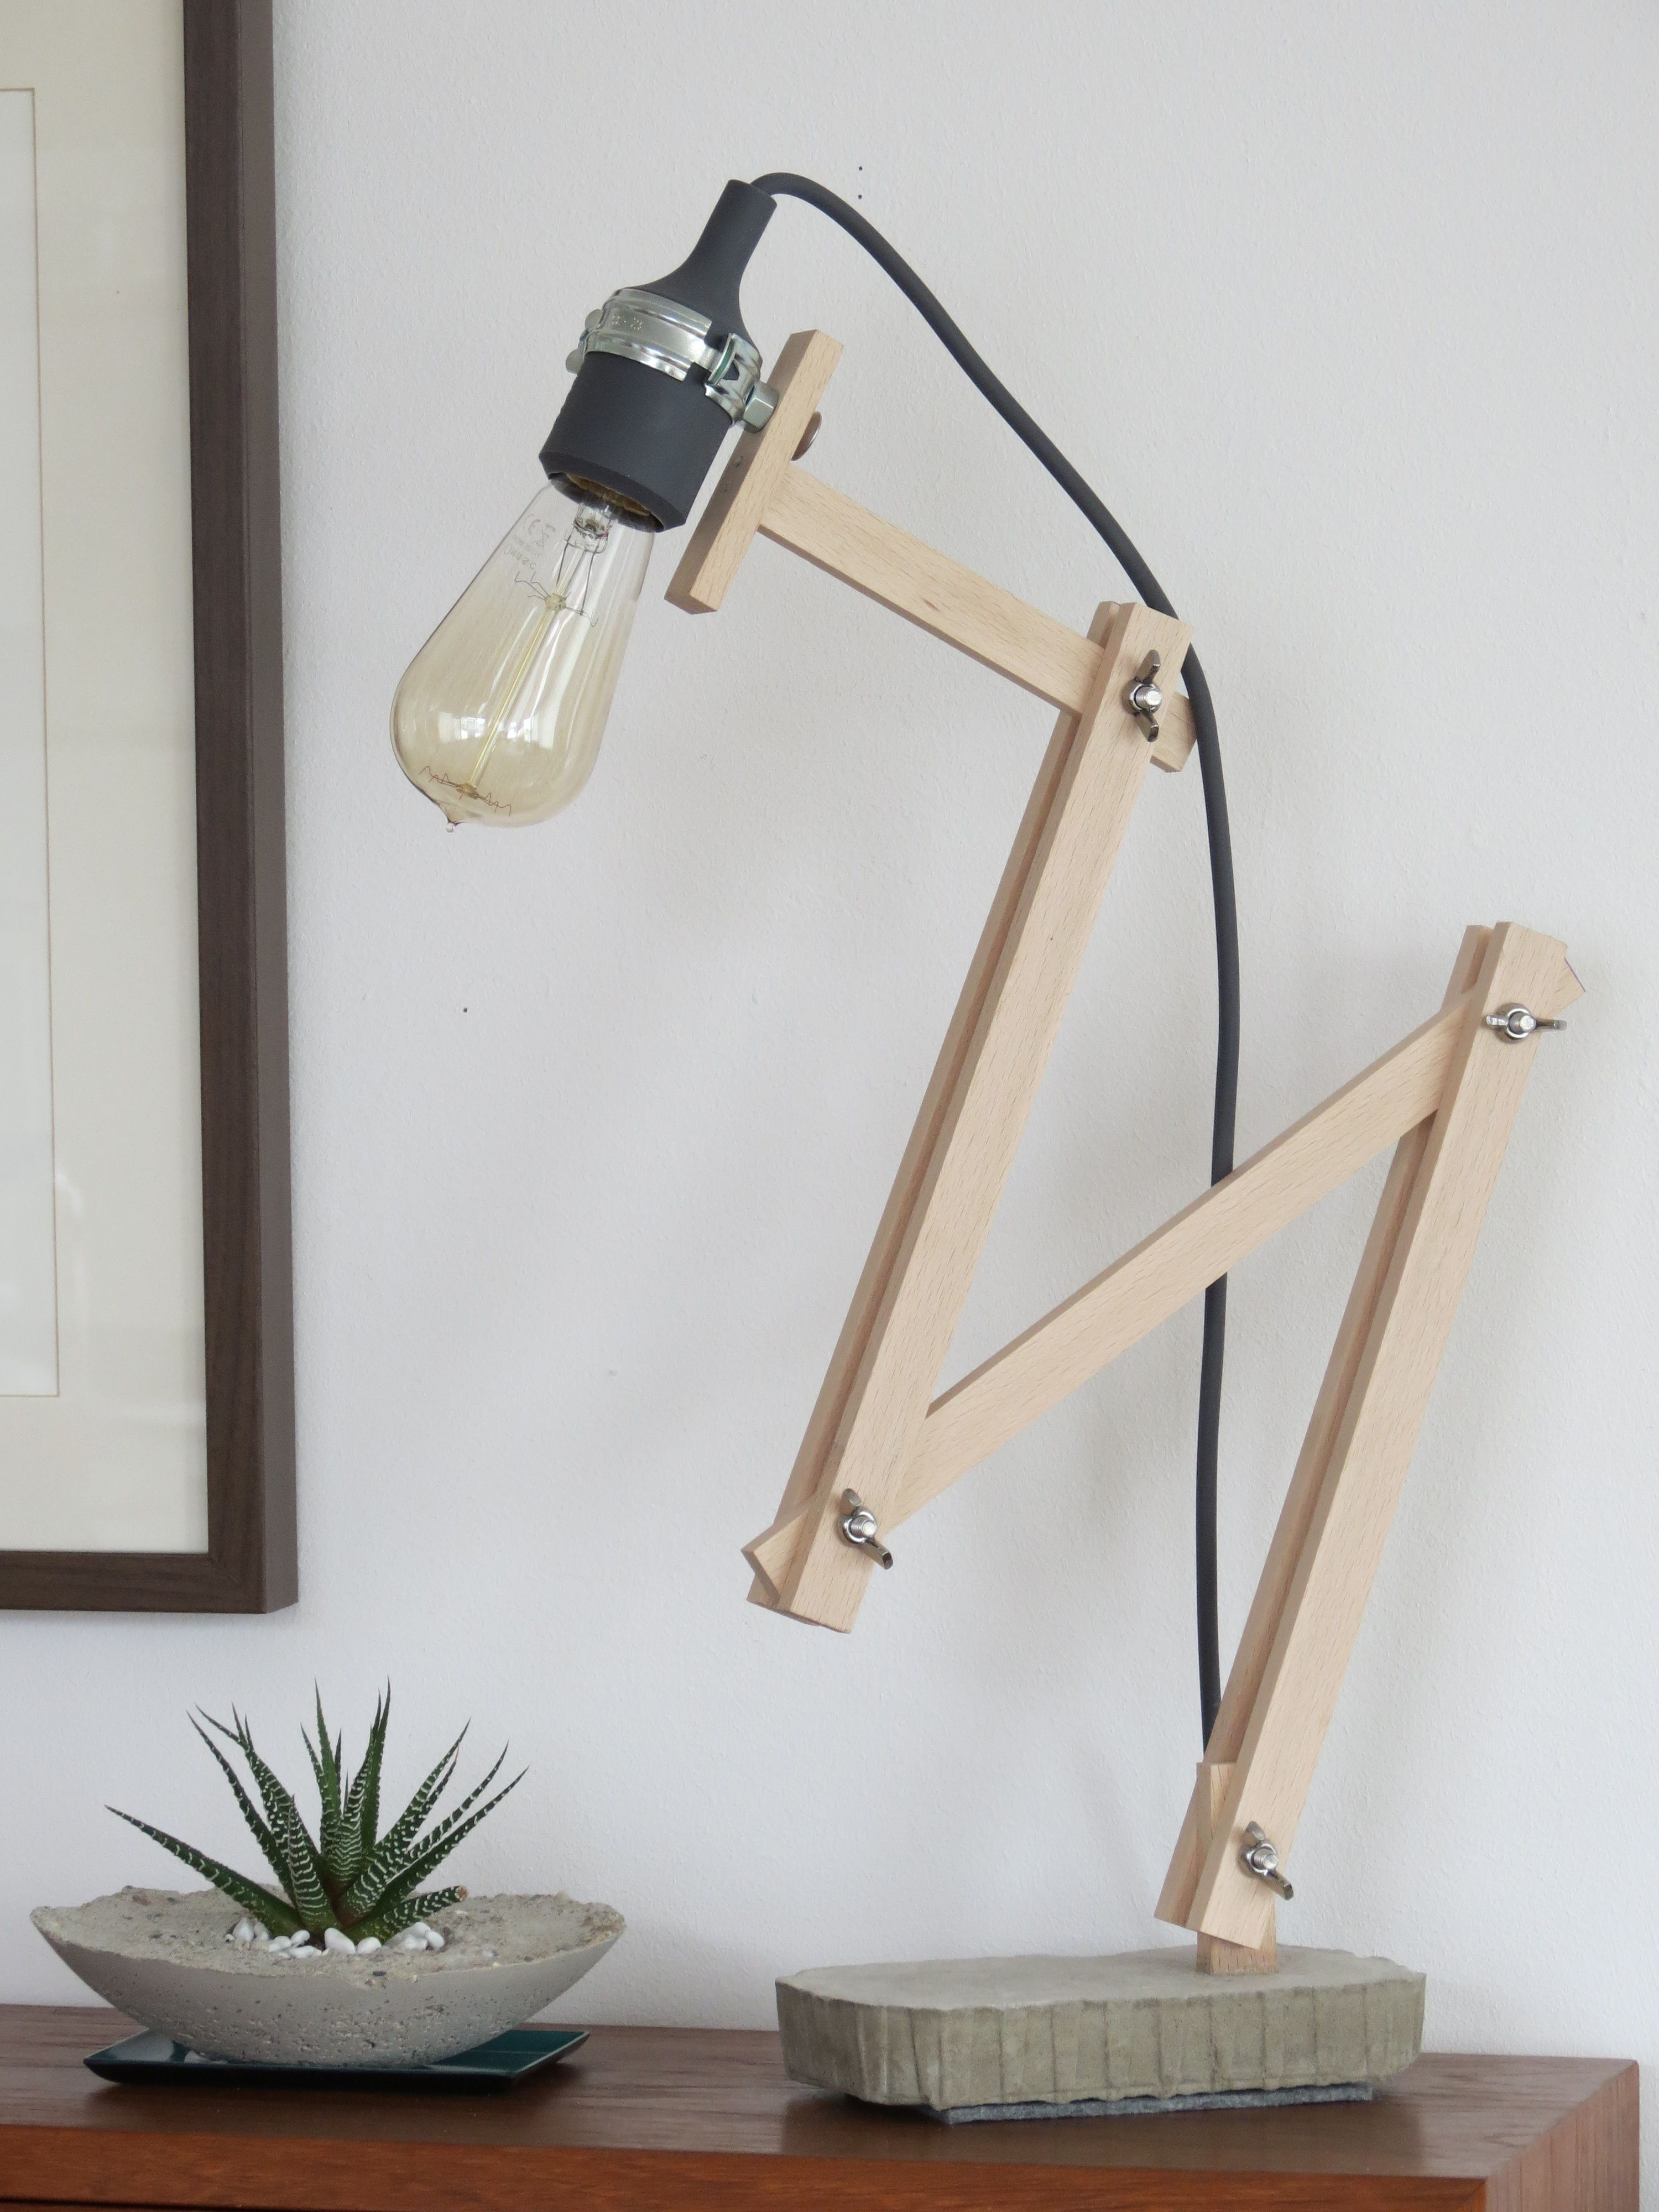 While Looking For A Lamp For Your House The Choices Are Nearly Unlimited Find The Most Suitable Living Room Lam In 2020 Wooden Desk Lamp Wooden Lamps Design Diy Lamp